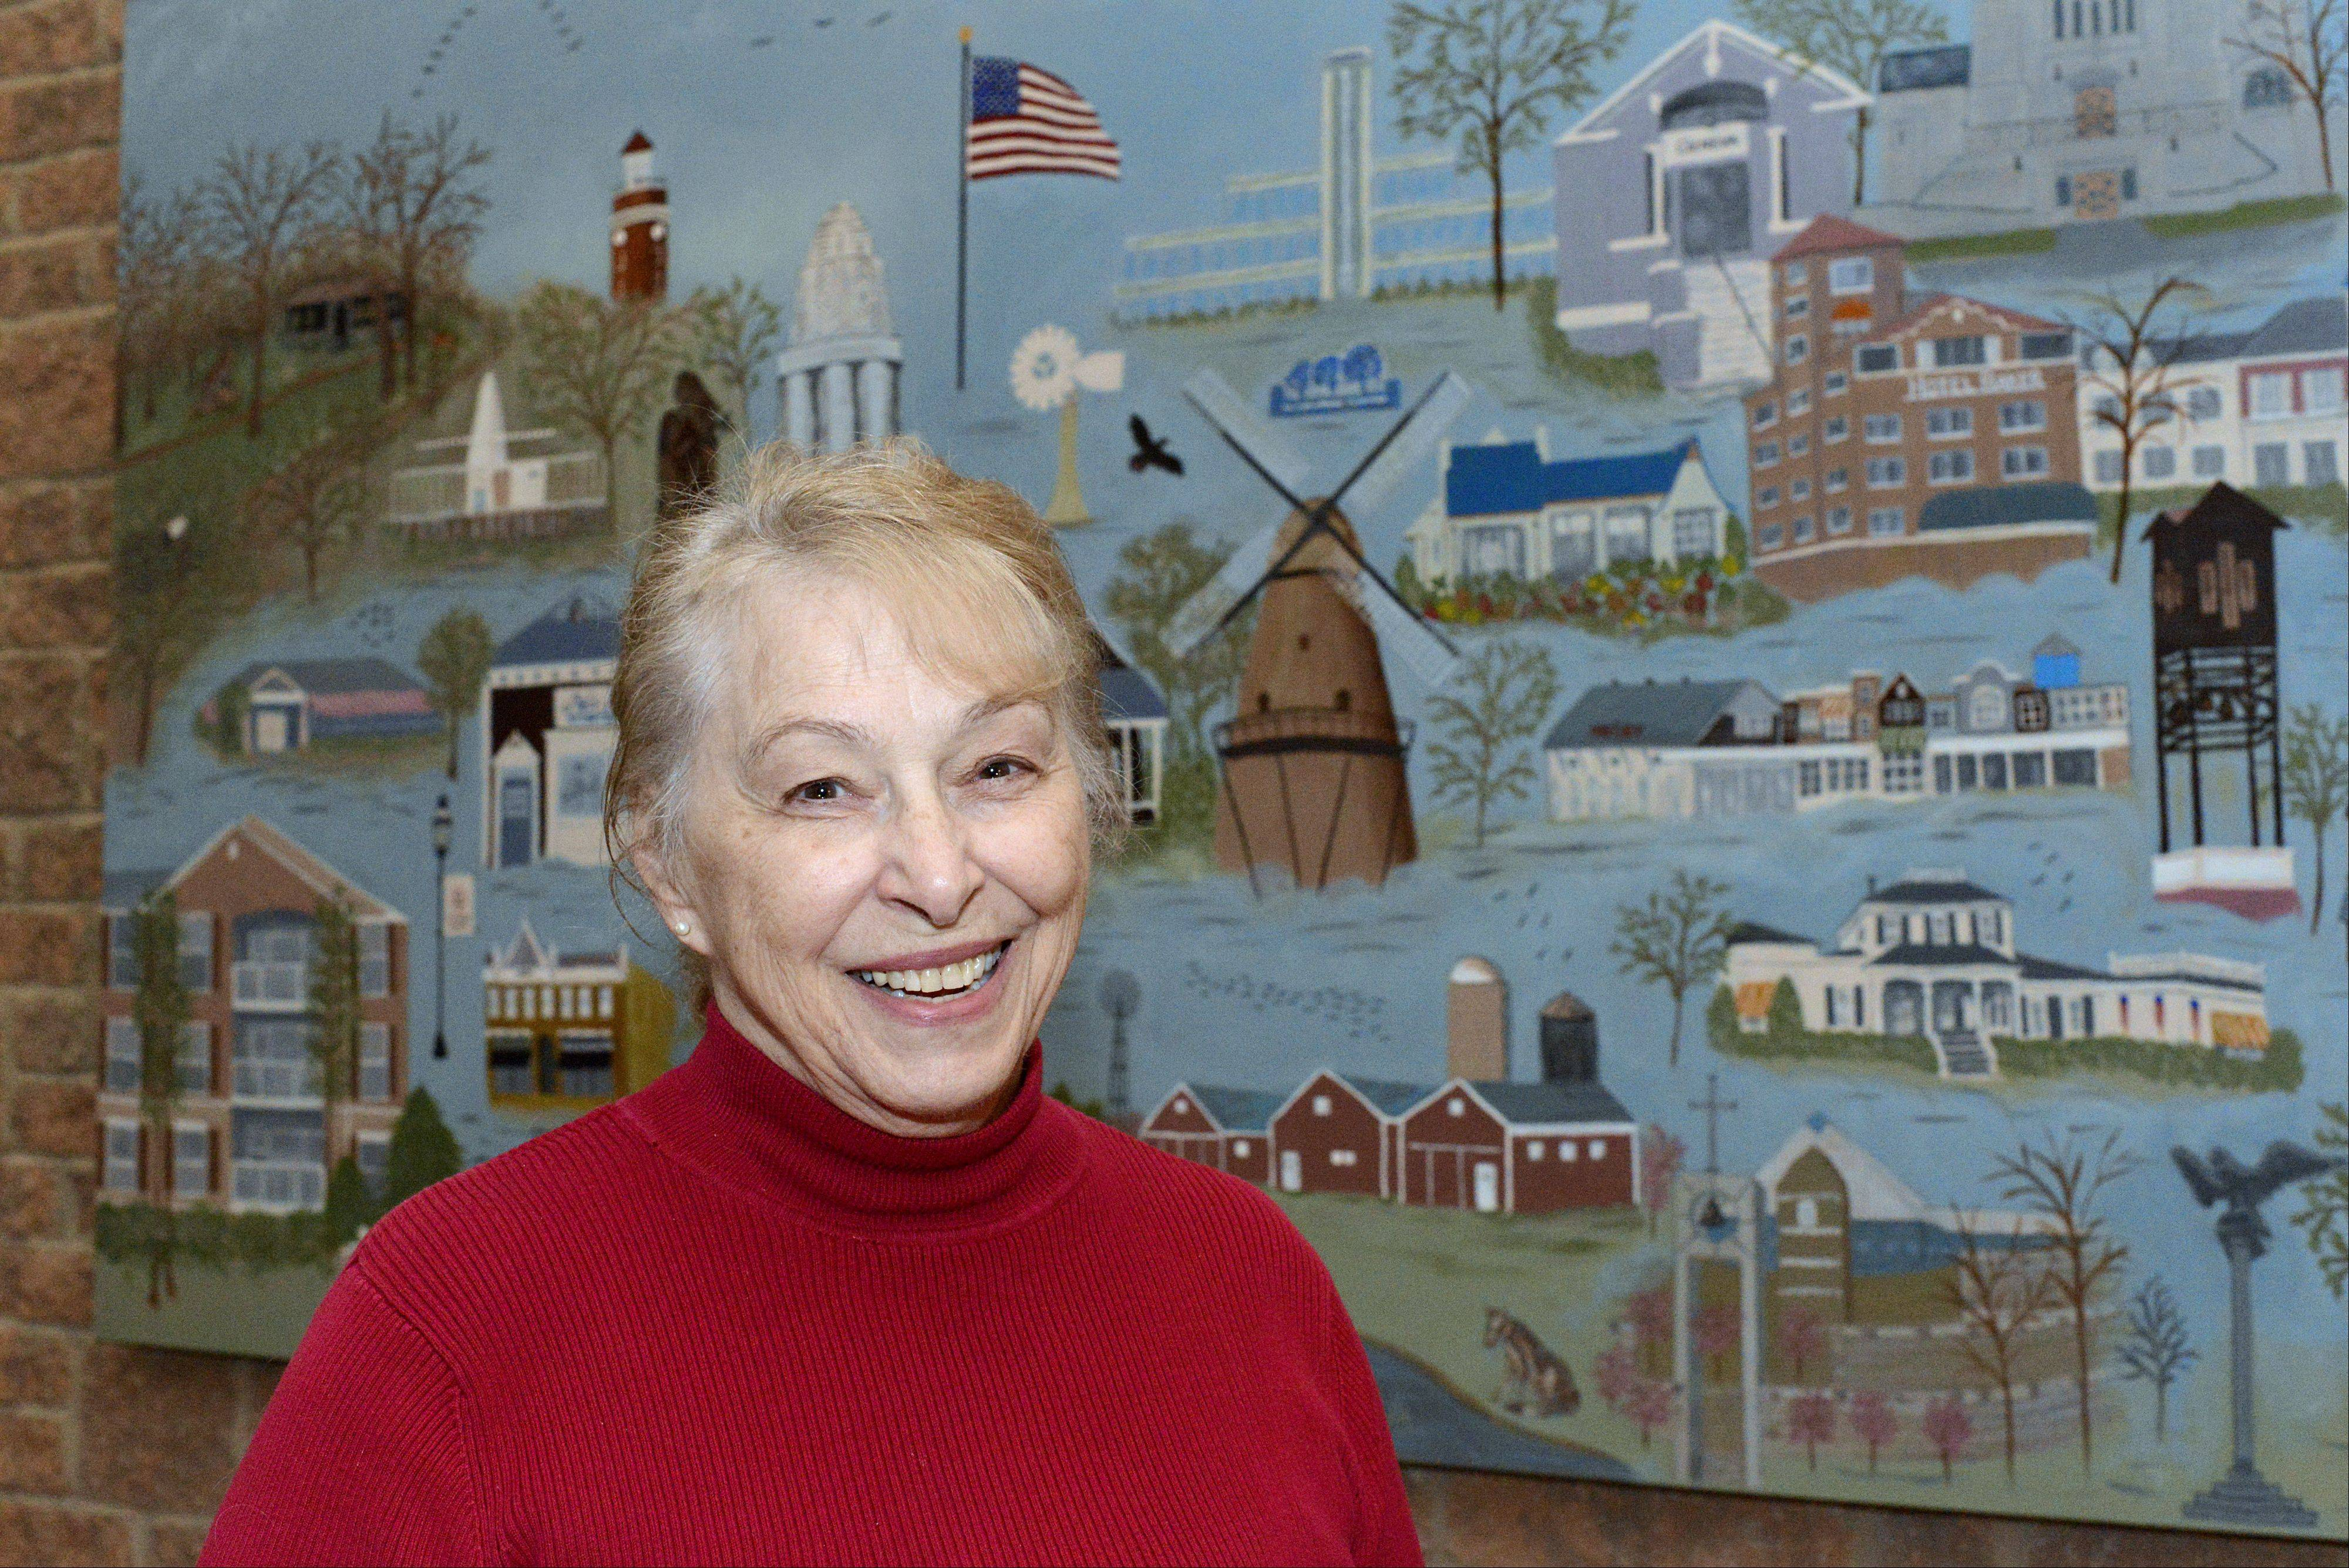 Flora Kaindl, resident of The Crossings in Geneva, painted two murals for the community room of the senior living condo complex. Both took about six months. One mural is of landmark buildings in the Tri Cities/Fox Valley area. The other is a triptych of the Chicago skyline, with fellow residents adding touches to the flower, sailboats and skyscrapers.